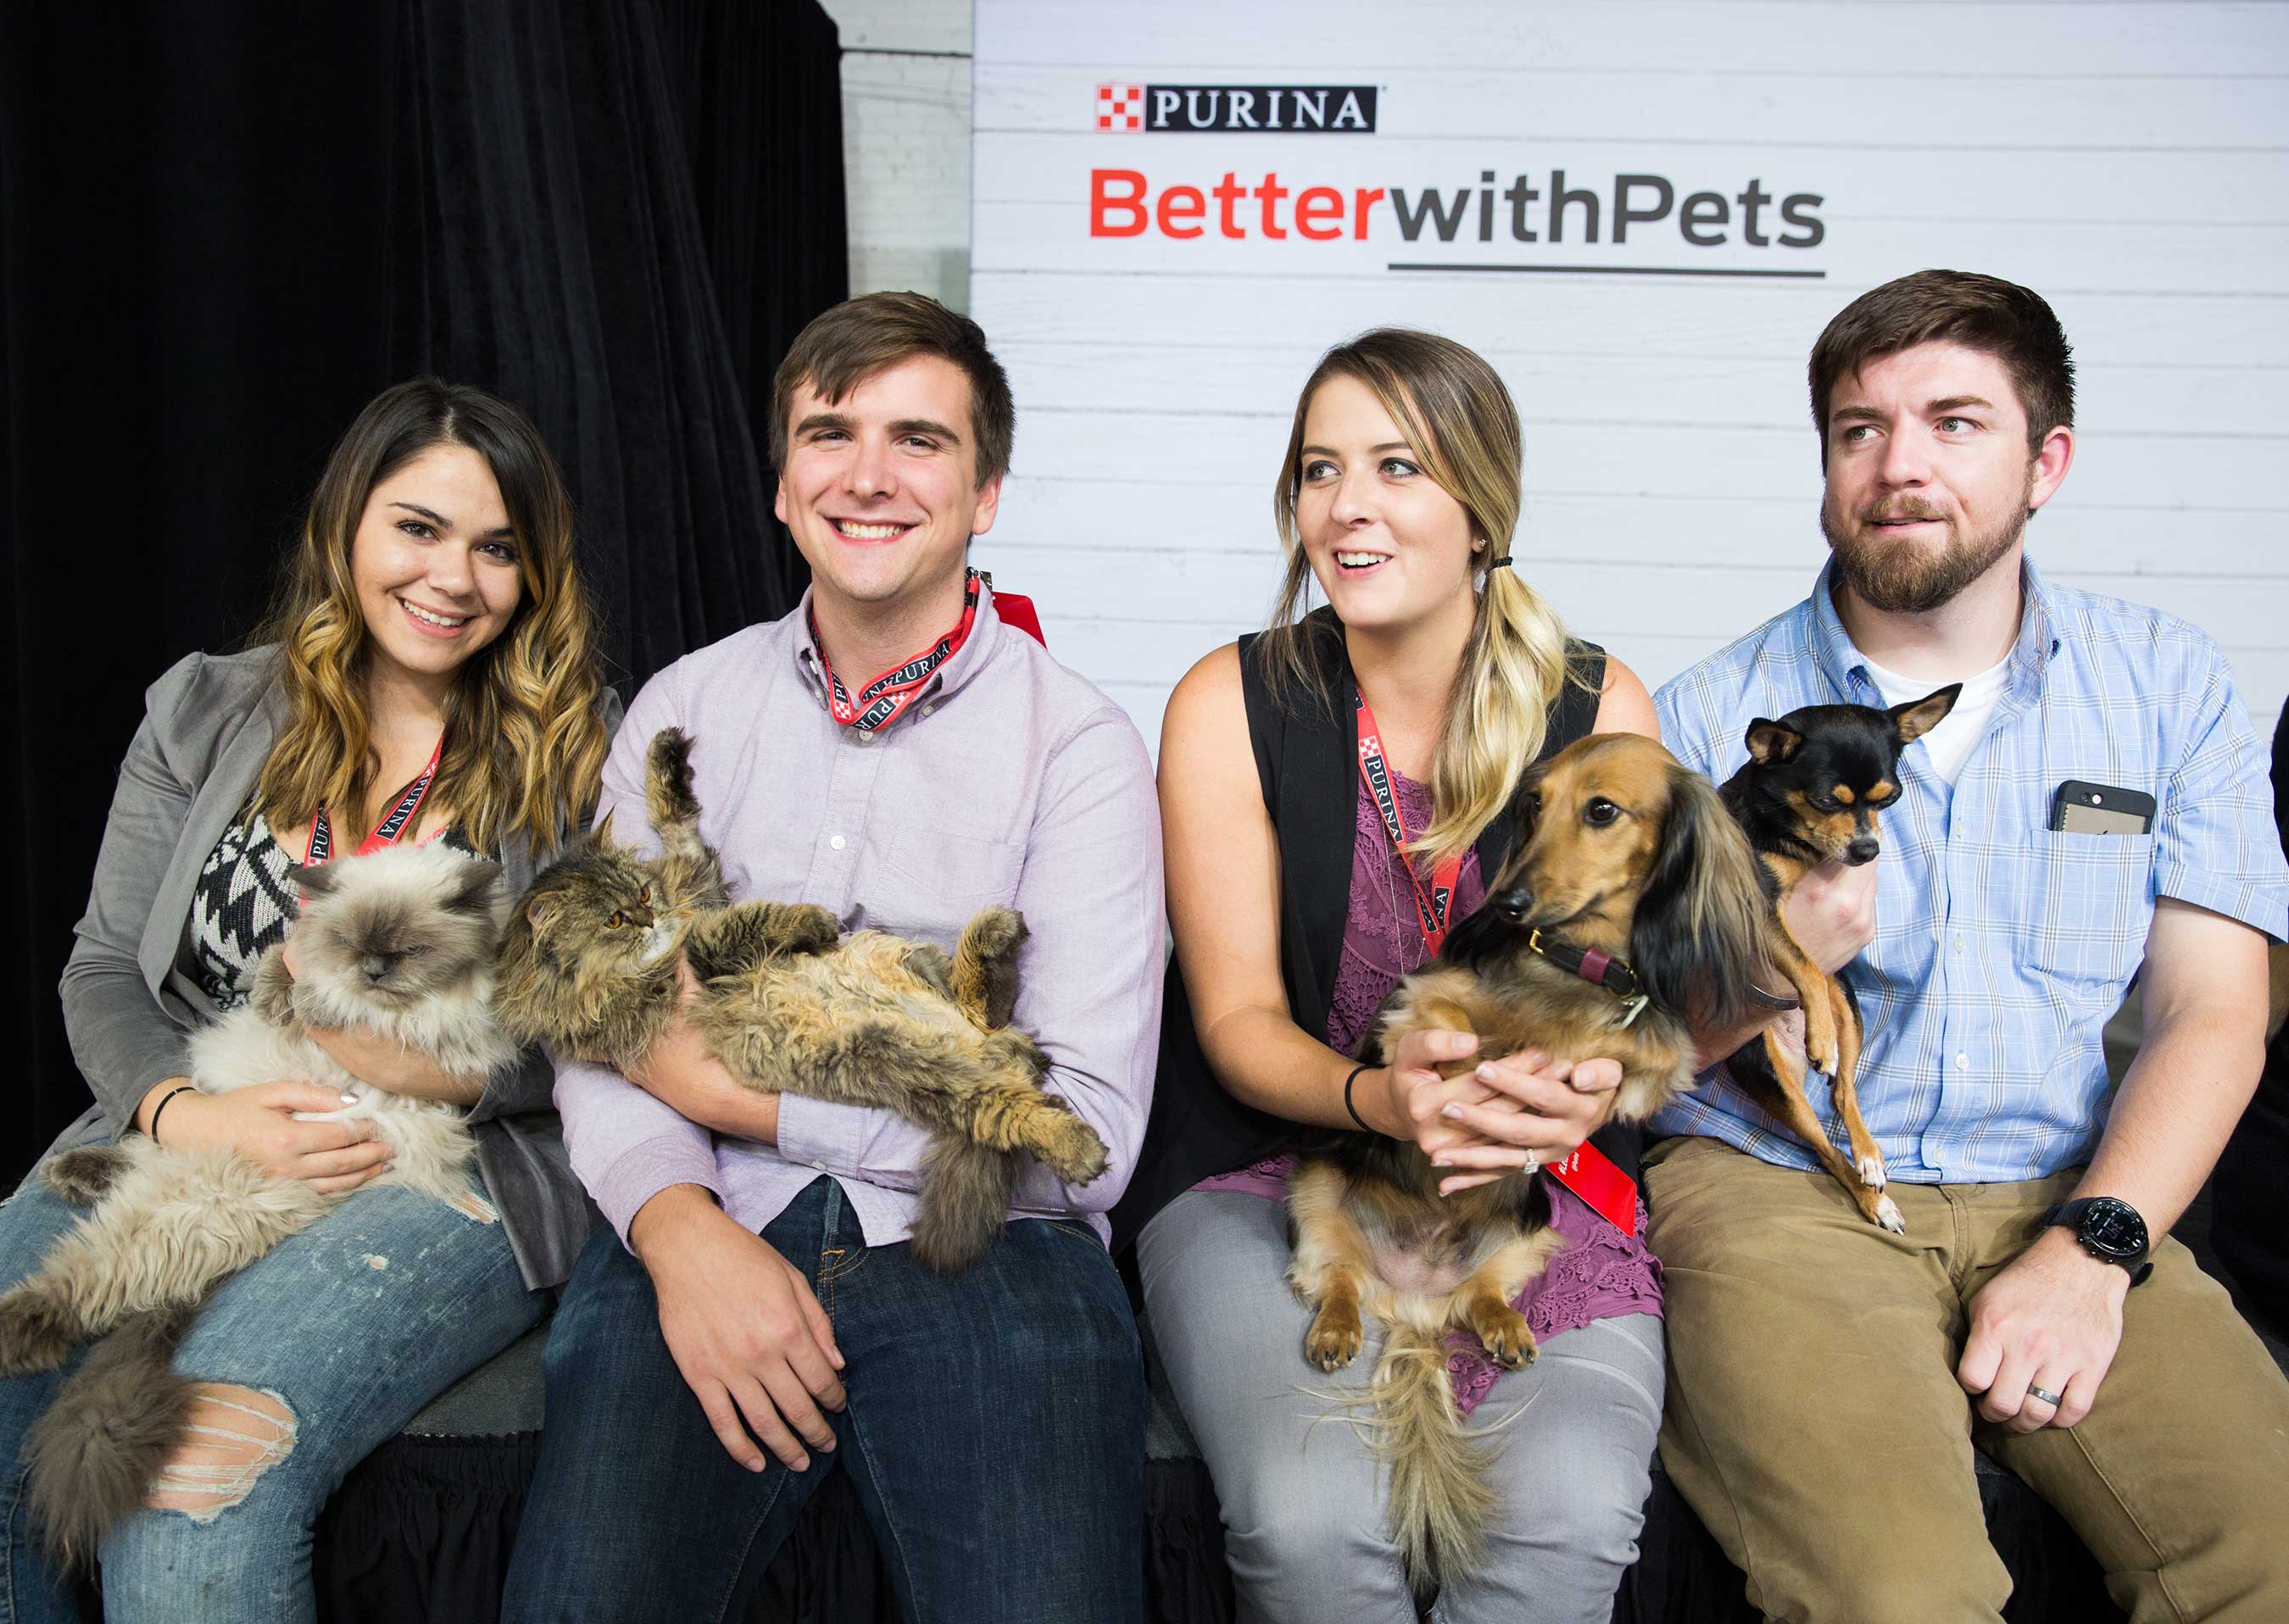 The daylong Better with Pets Summit united pet lovers, innovators, and pet community influencers in immersive experiences that reinforced how pets make our lives bigger.